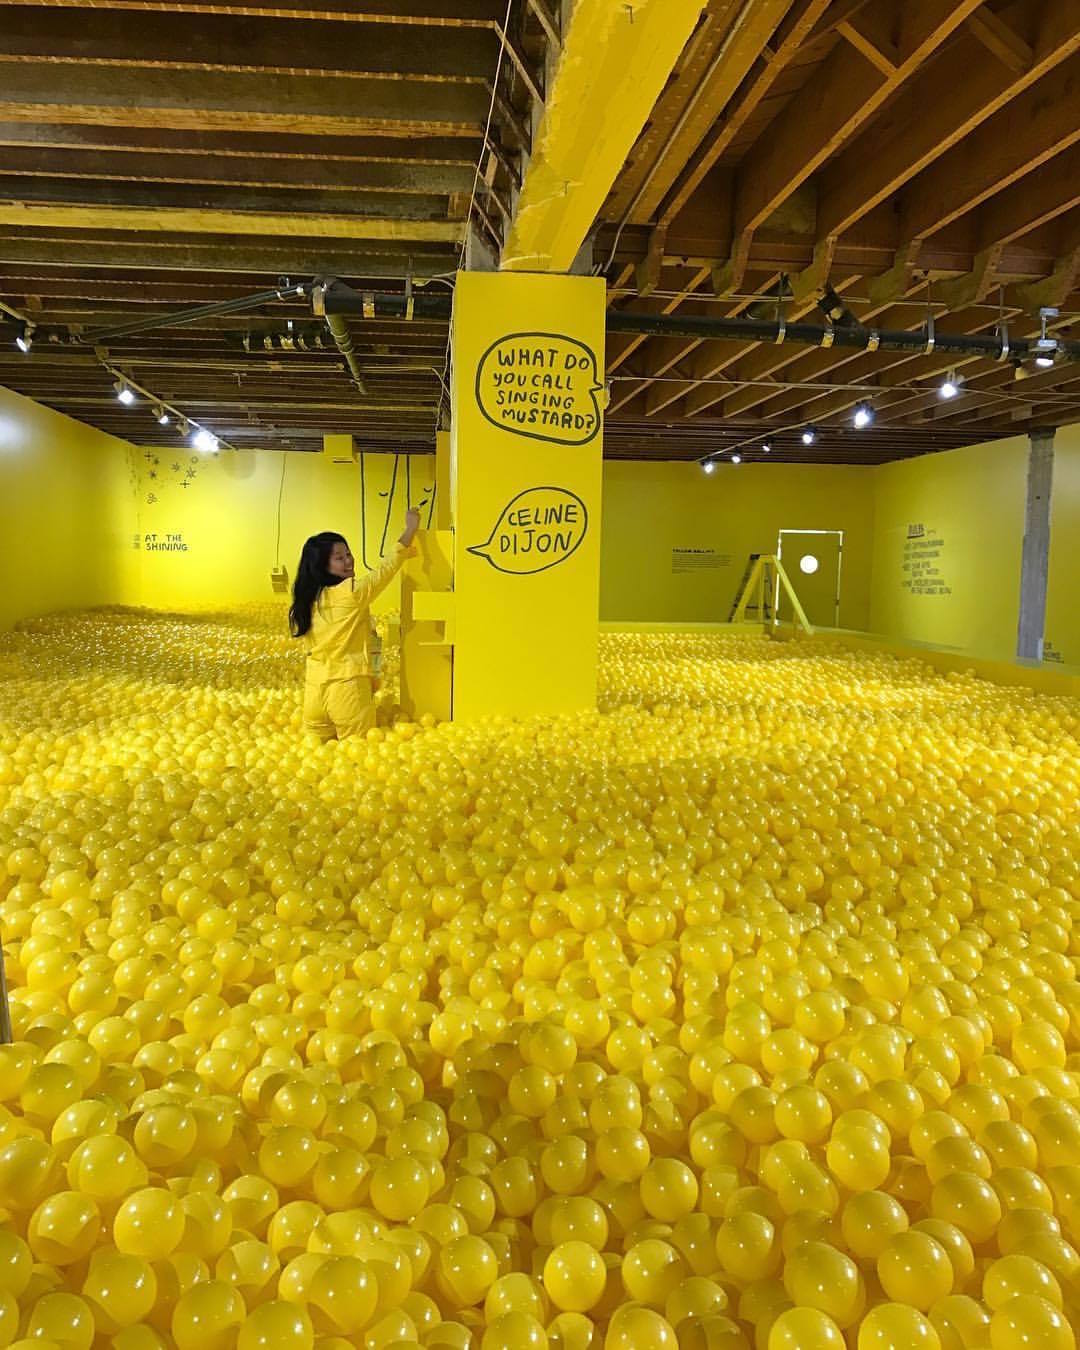 The yellow ball room at the Color Factory